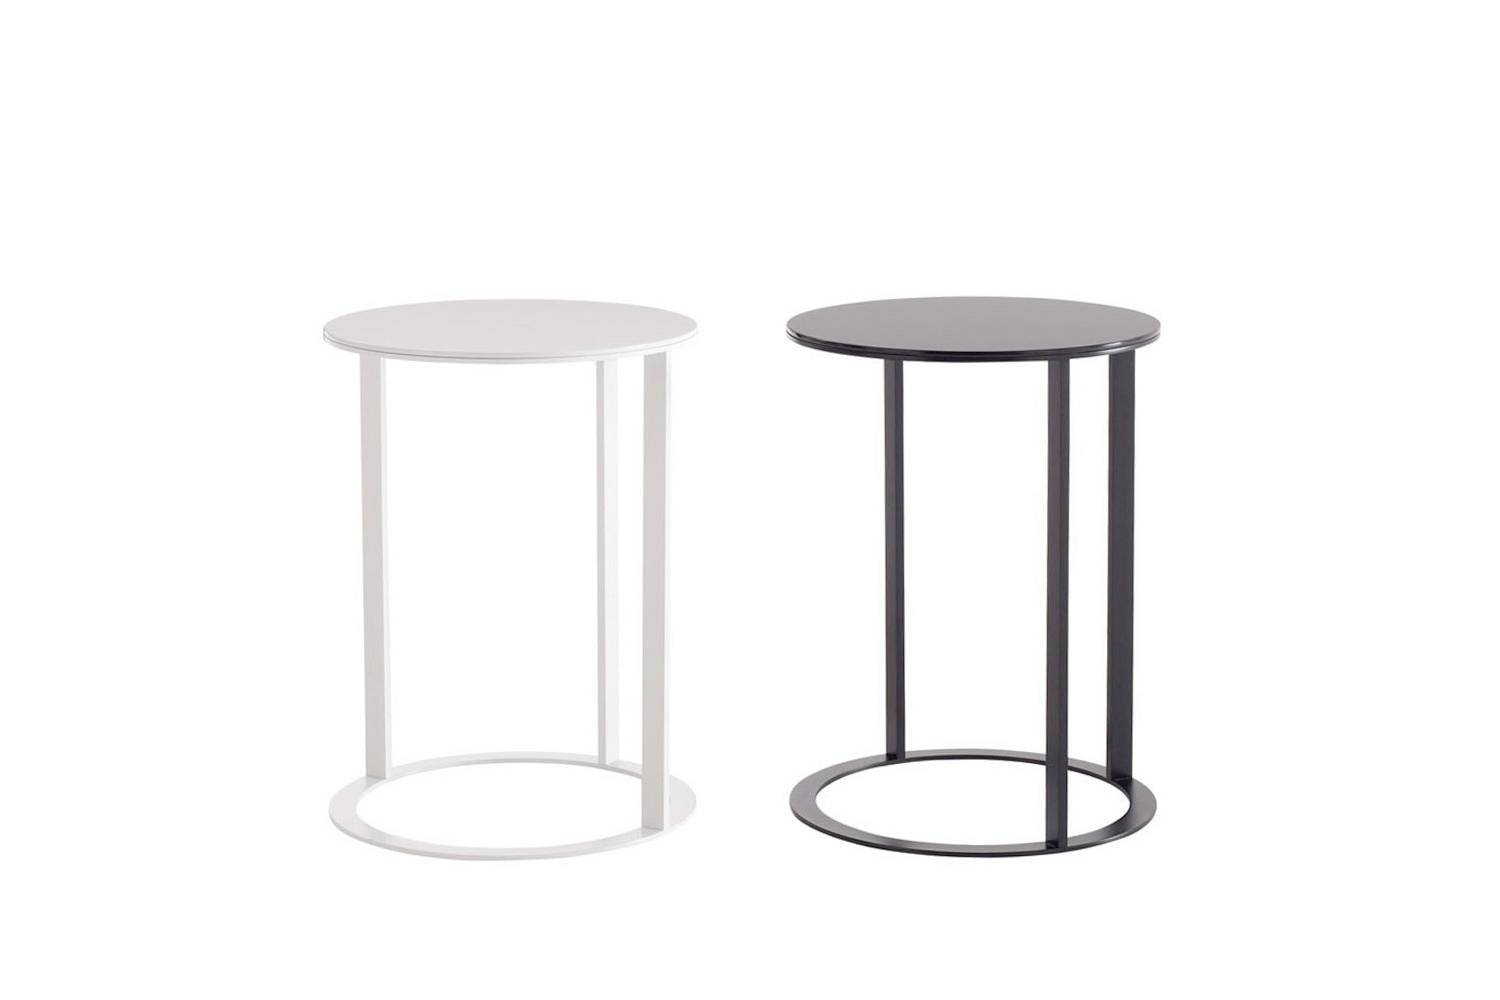 Frank Side Table by Antonio Citterio for B&B Italia